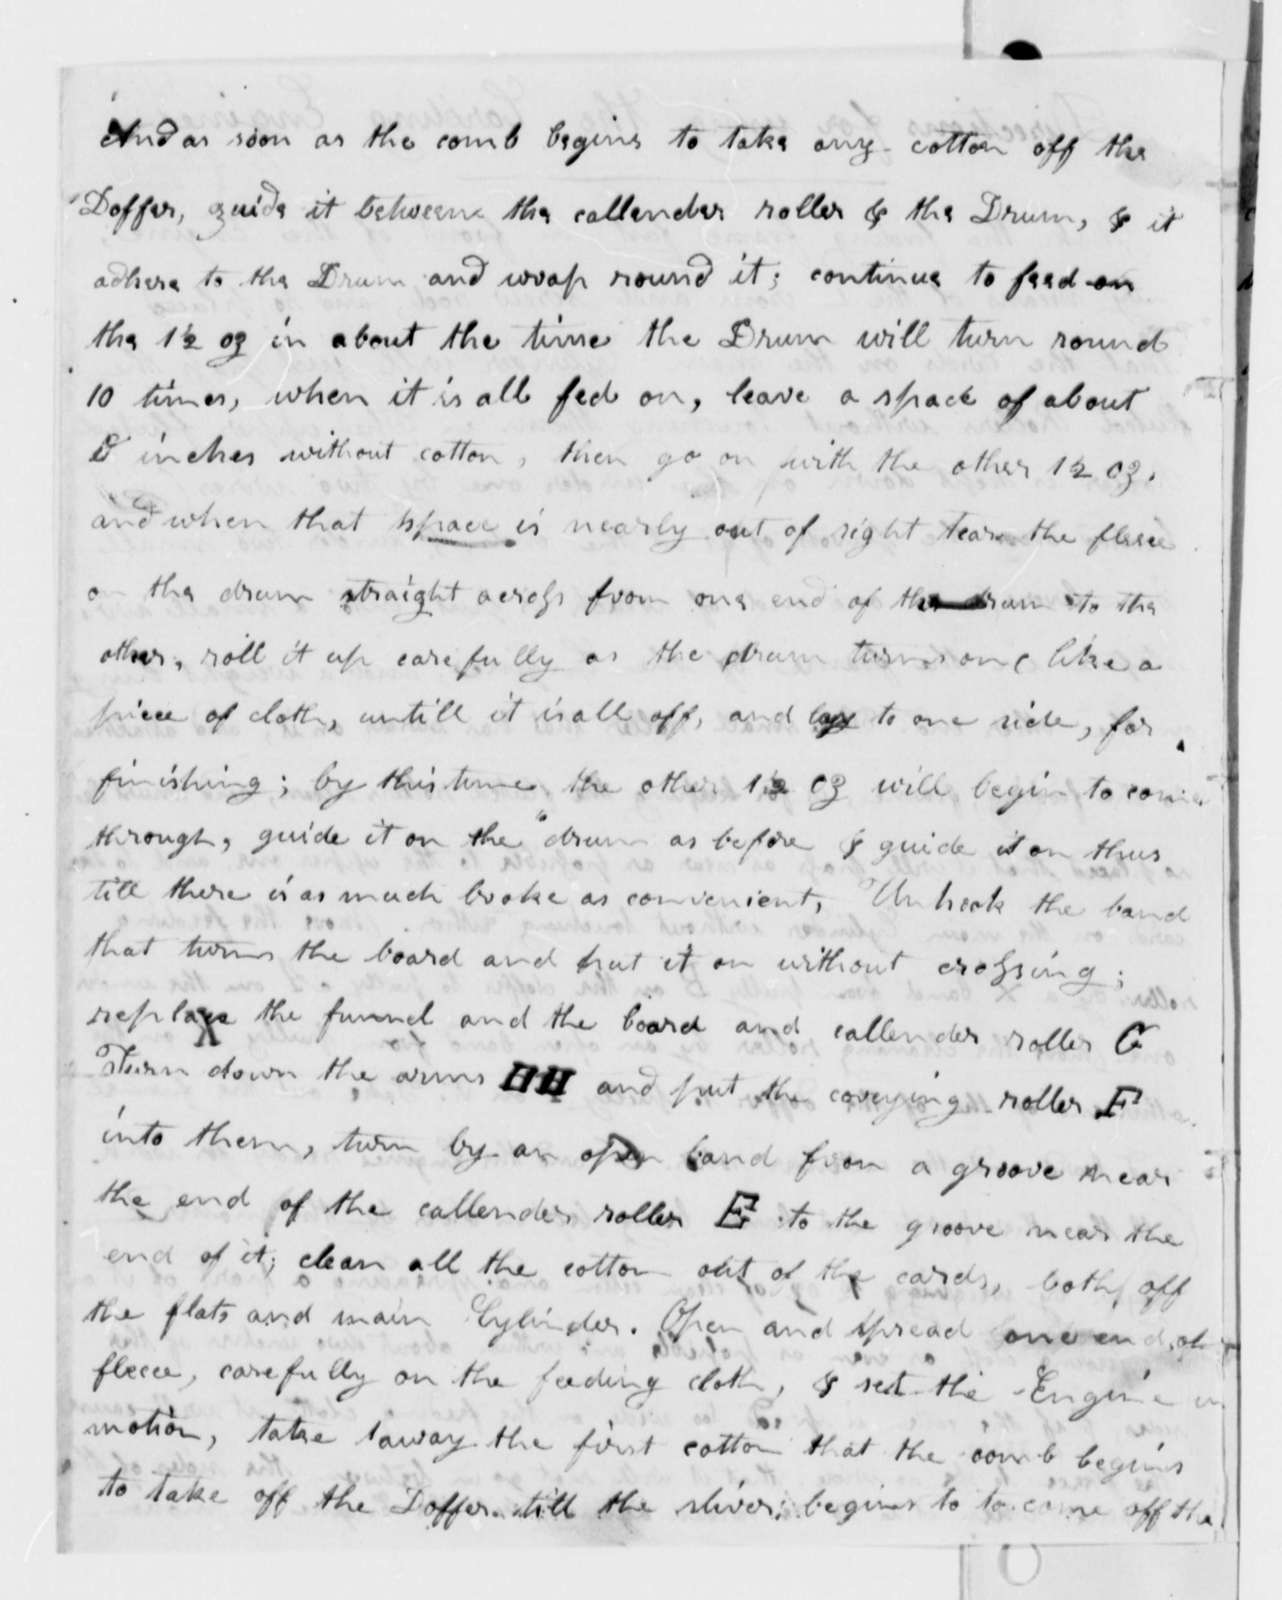 William A. Burwell to Thomas Jefferson, March 13, 1813, with Instructions